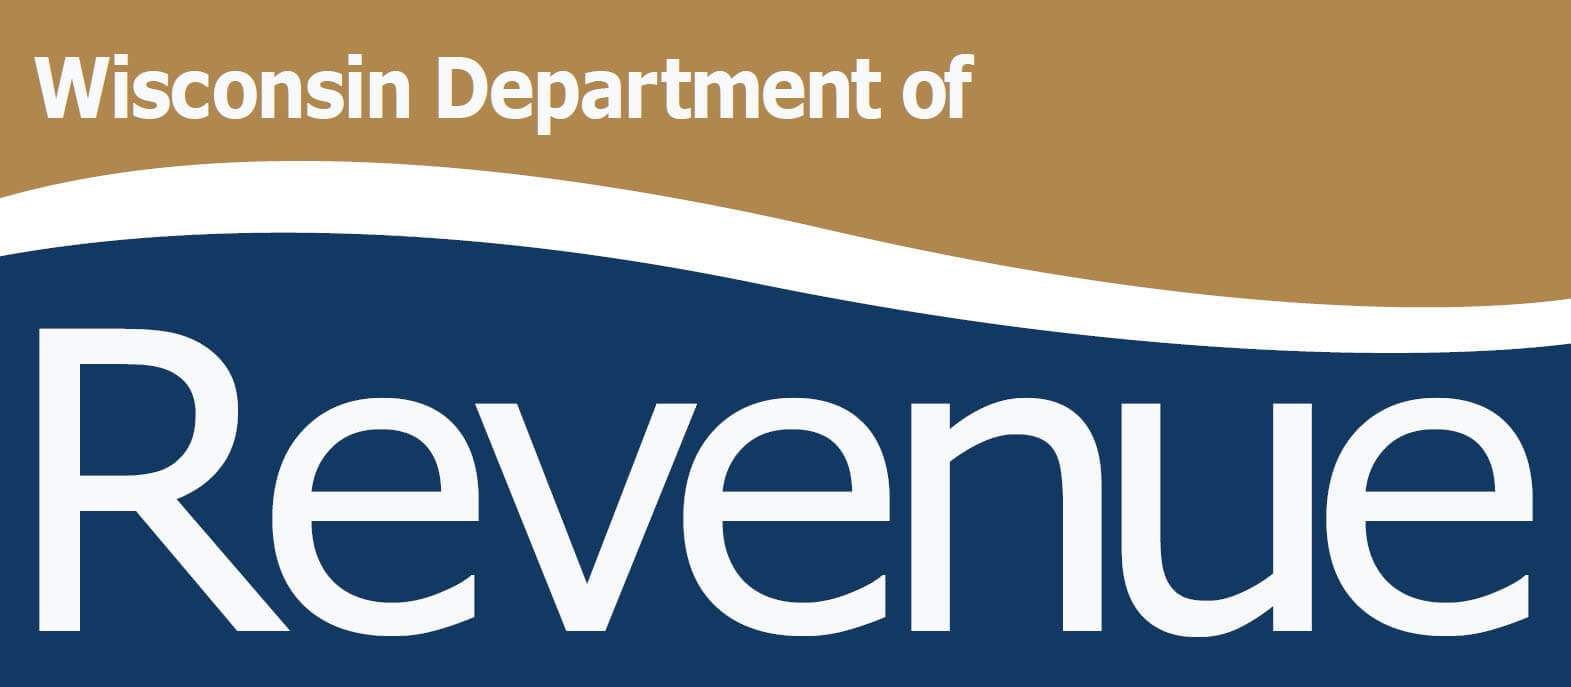 State of Wisconsin Department of Revenue logo